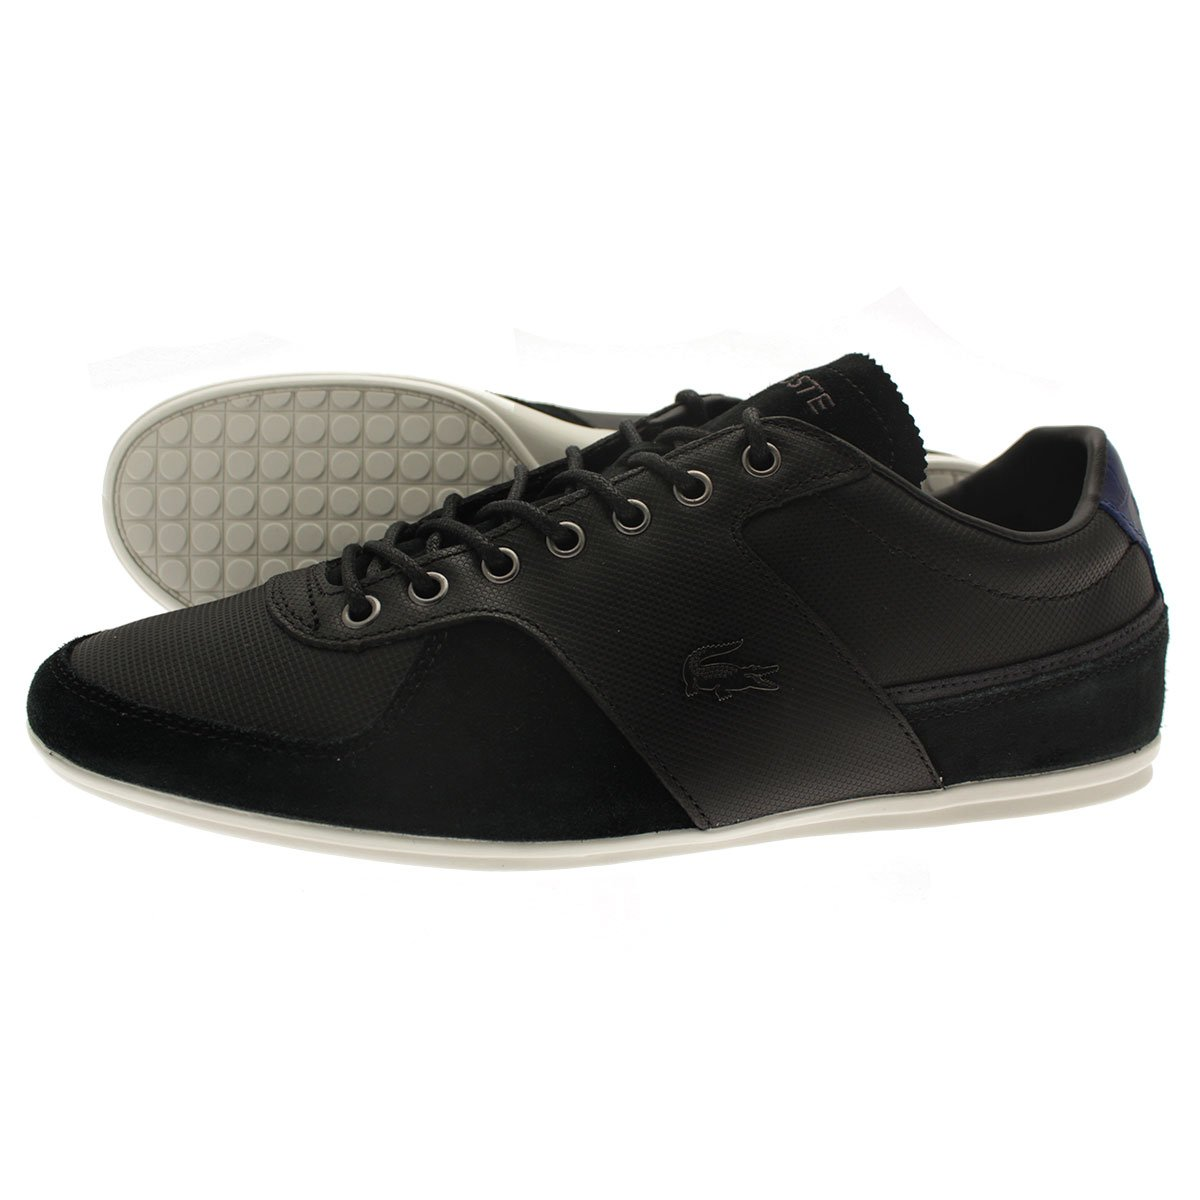 lacoste taloire 15 srm trainers footwear from the